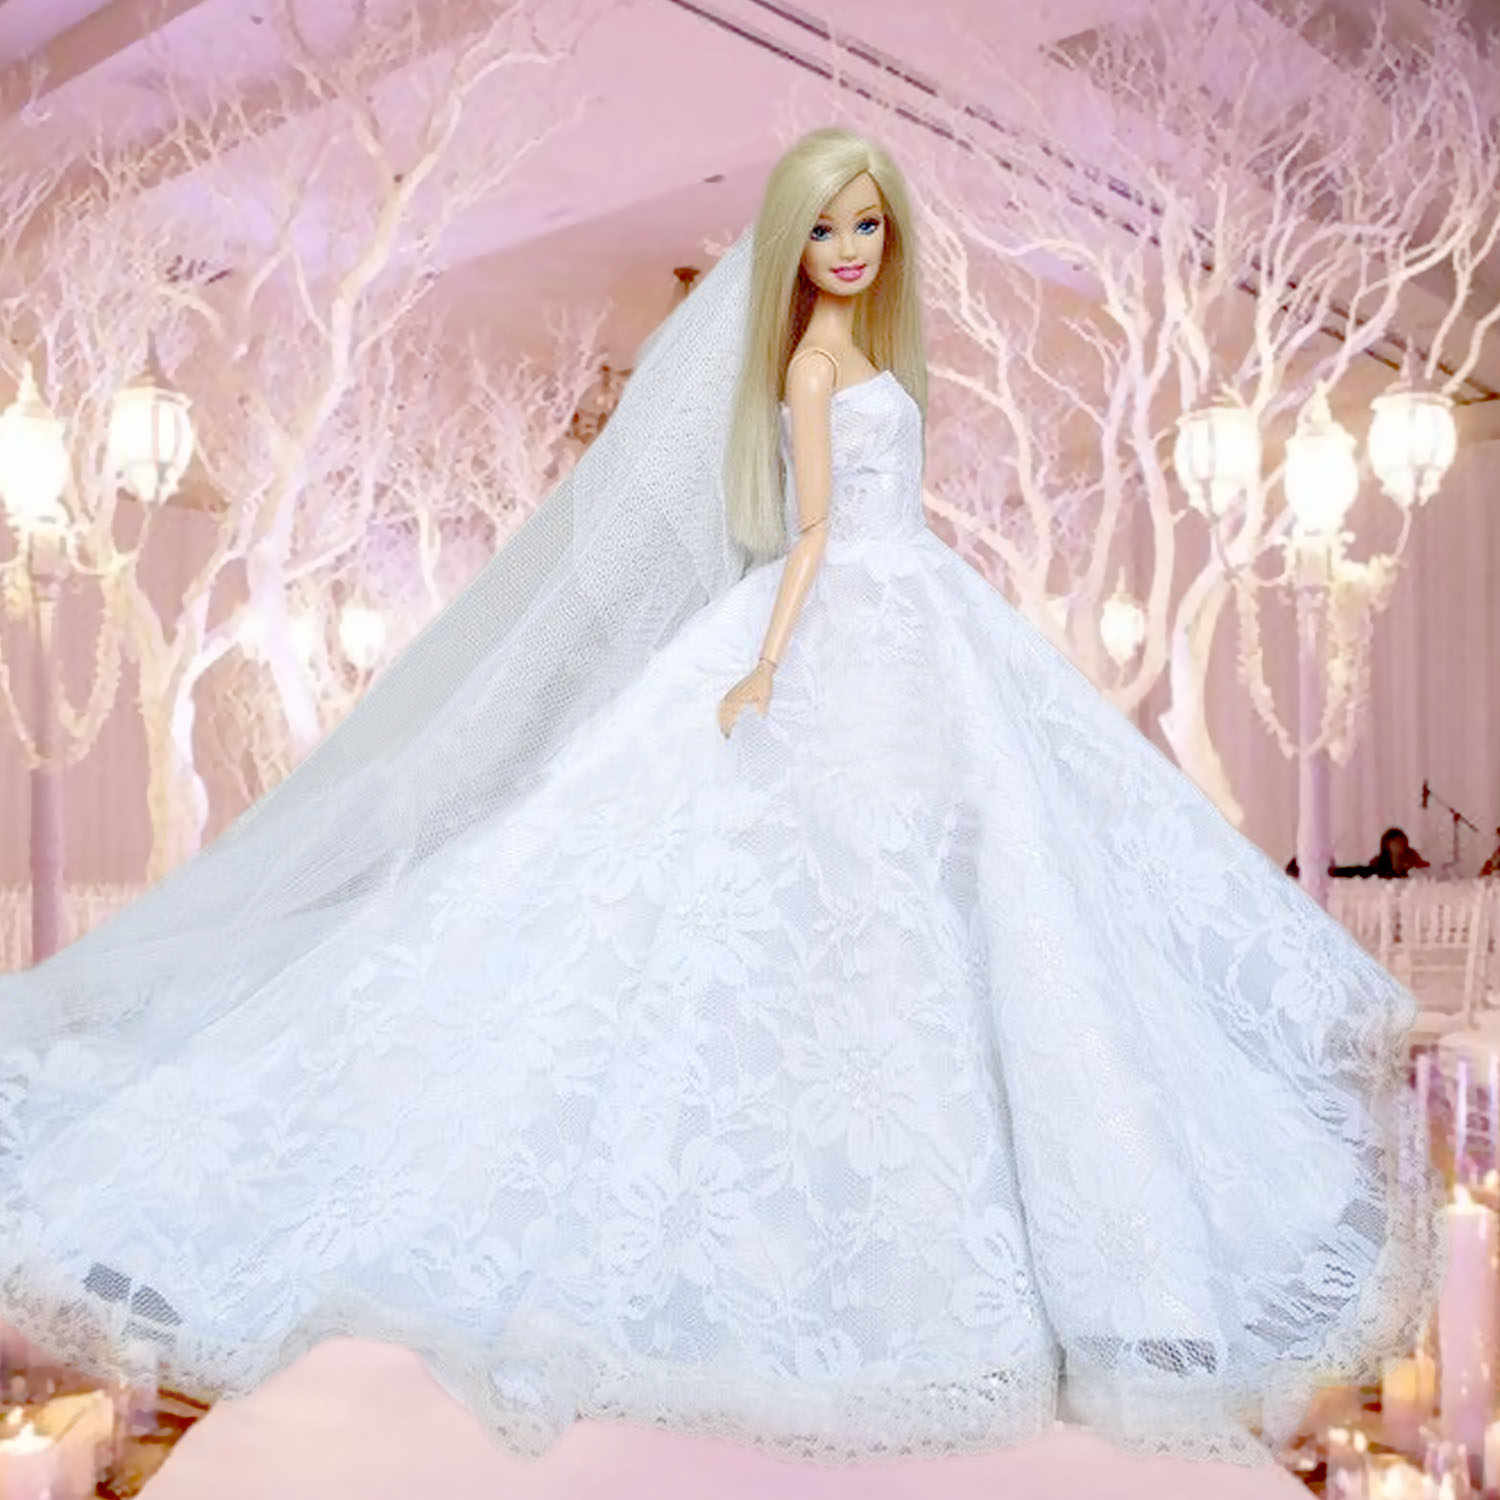 Detail Feedback Questions about Besegad Mini Girl Doll White Wedding  Dresses Long Lace Gauze Embroidered Gown Princess Dress Clothes Accessories  for Barbie ... 7620094abef0